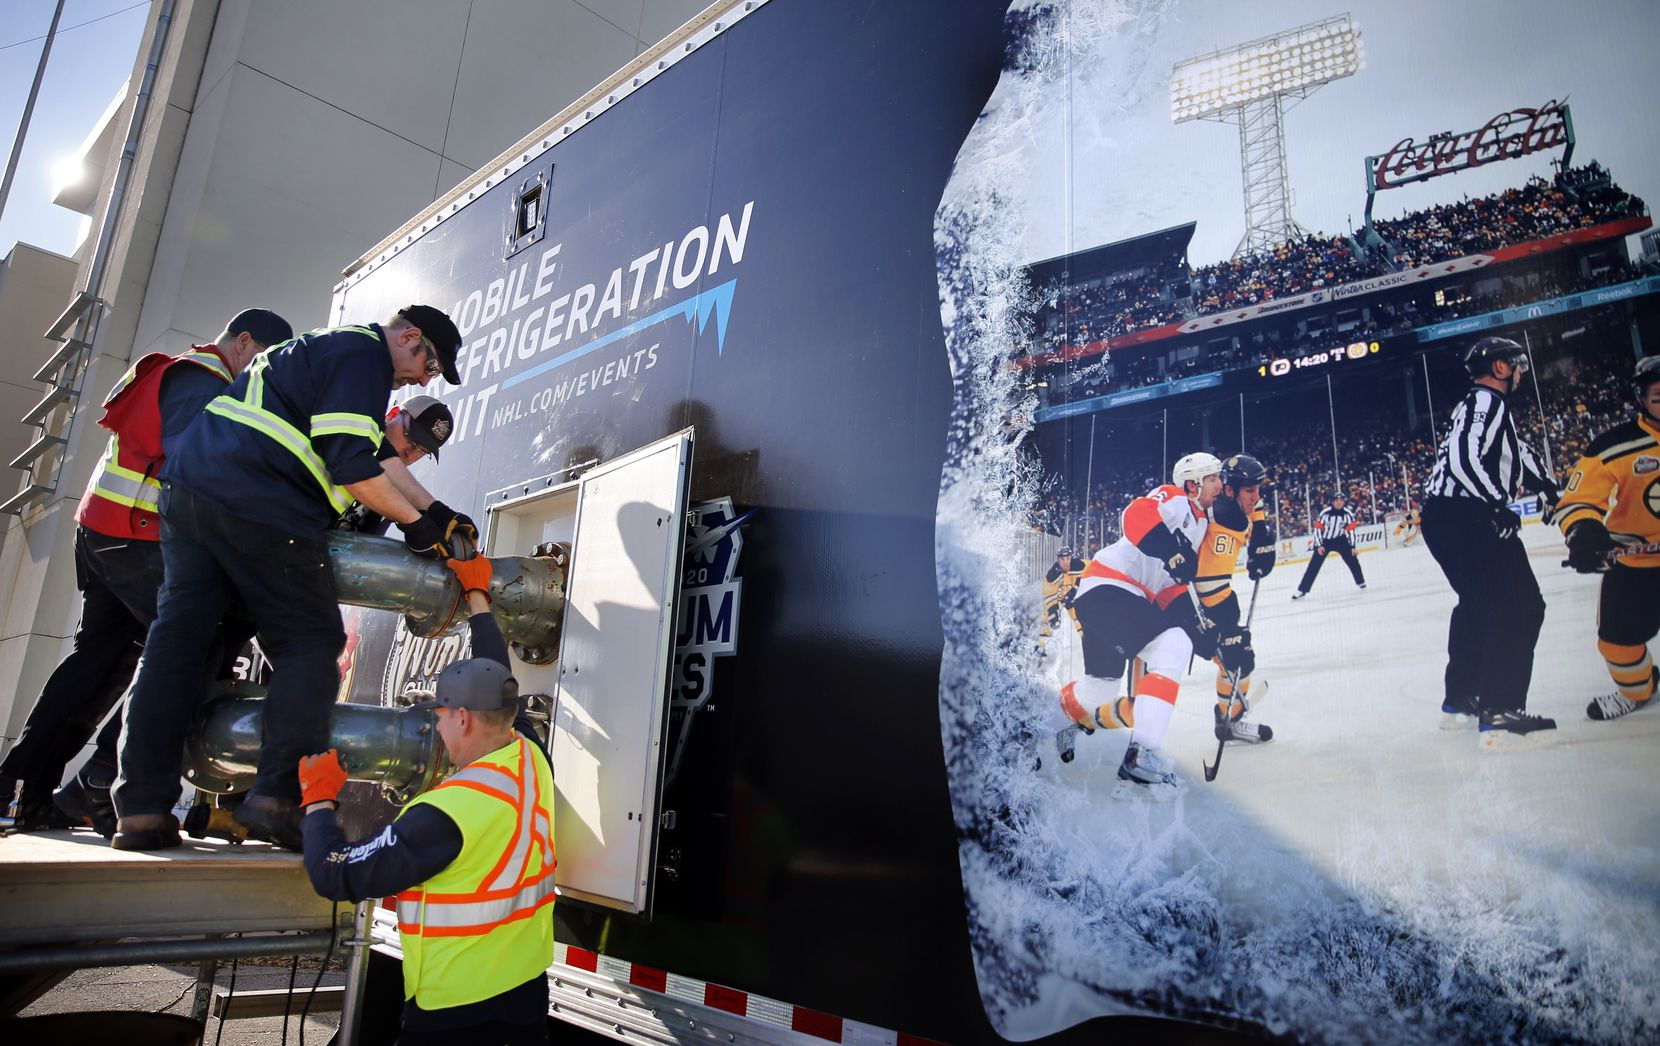 Workers assemble parts of the Mobile Refrigeration Unit which will freeze and keep the ice frozen for the New Year's Day Winter Classic hockey game at Fair Park in Dallas, Tuesday, December 17, 2019. According to the NHL, the 53-foot trailer is the world's largest mobile refrigeration unit. It houses a state-of-the-art ice-making and ice-monitoring equipment used to create an NHL-caliber sheet of ice. The annual game will pit the Dallas Stars against the Nashville Predators at the Cotton Bowl. (Tom Fox/The Dallas Morning News)